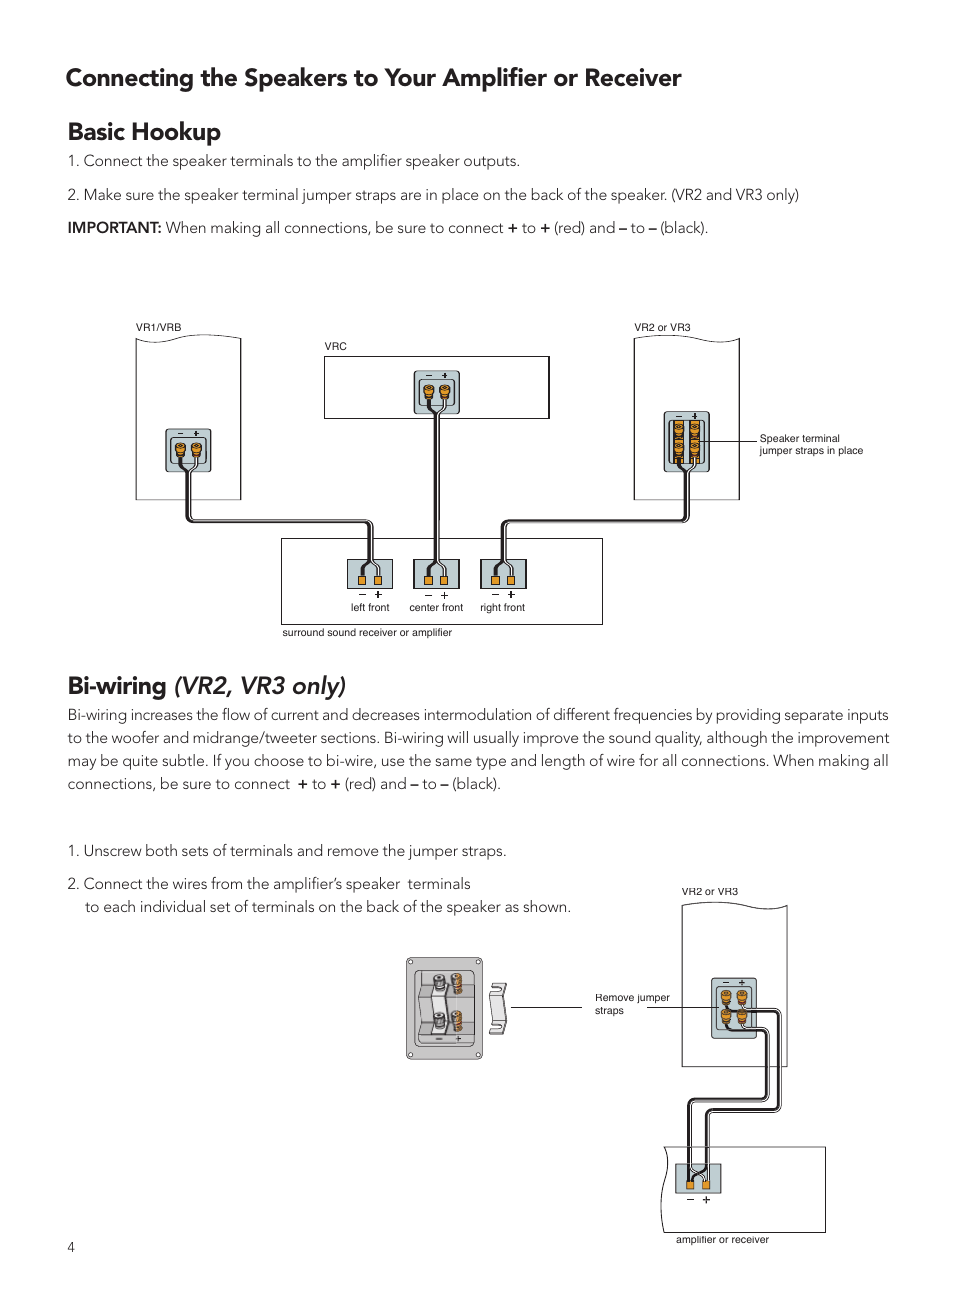 hight resolution of basic hookup bi wiring vr2 vr3 only boston acoustics vrc user manual page 4 8